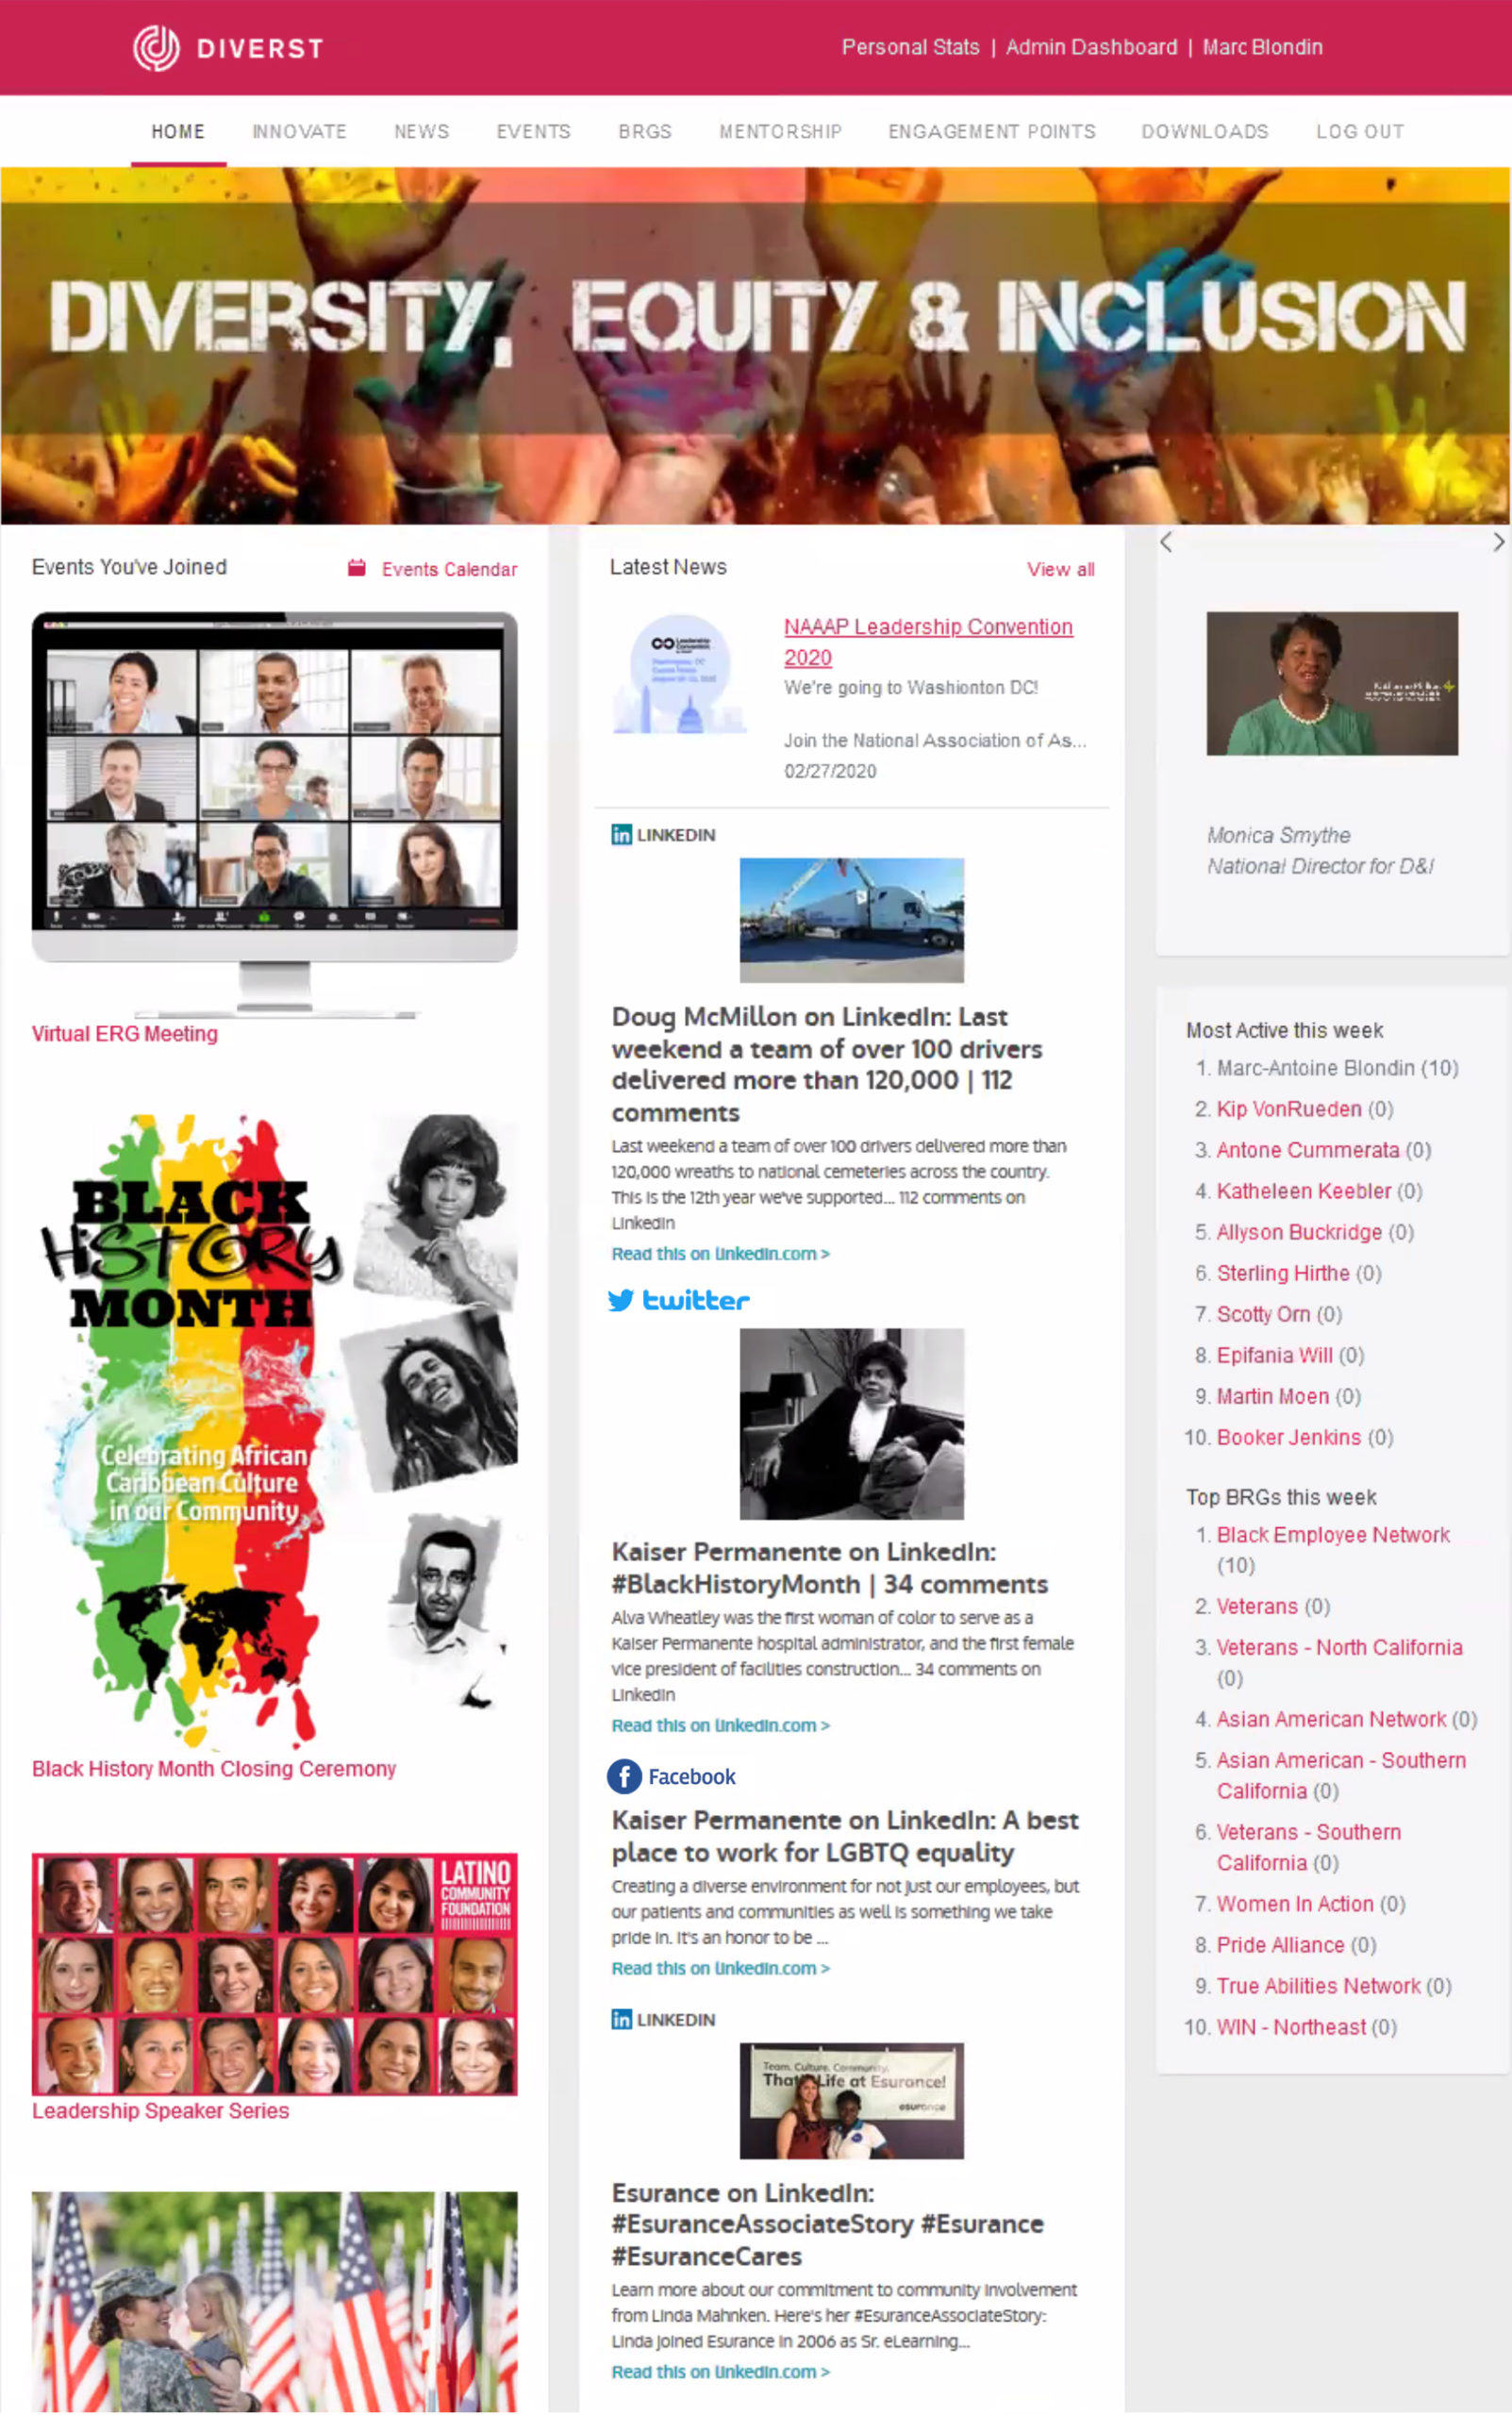 Photo of Diverst web page with Diversity - Equity - Inclusion banner